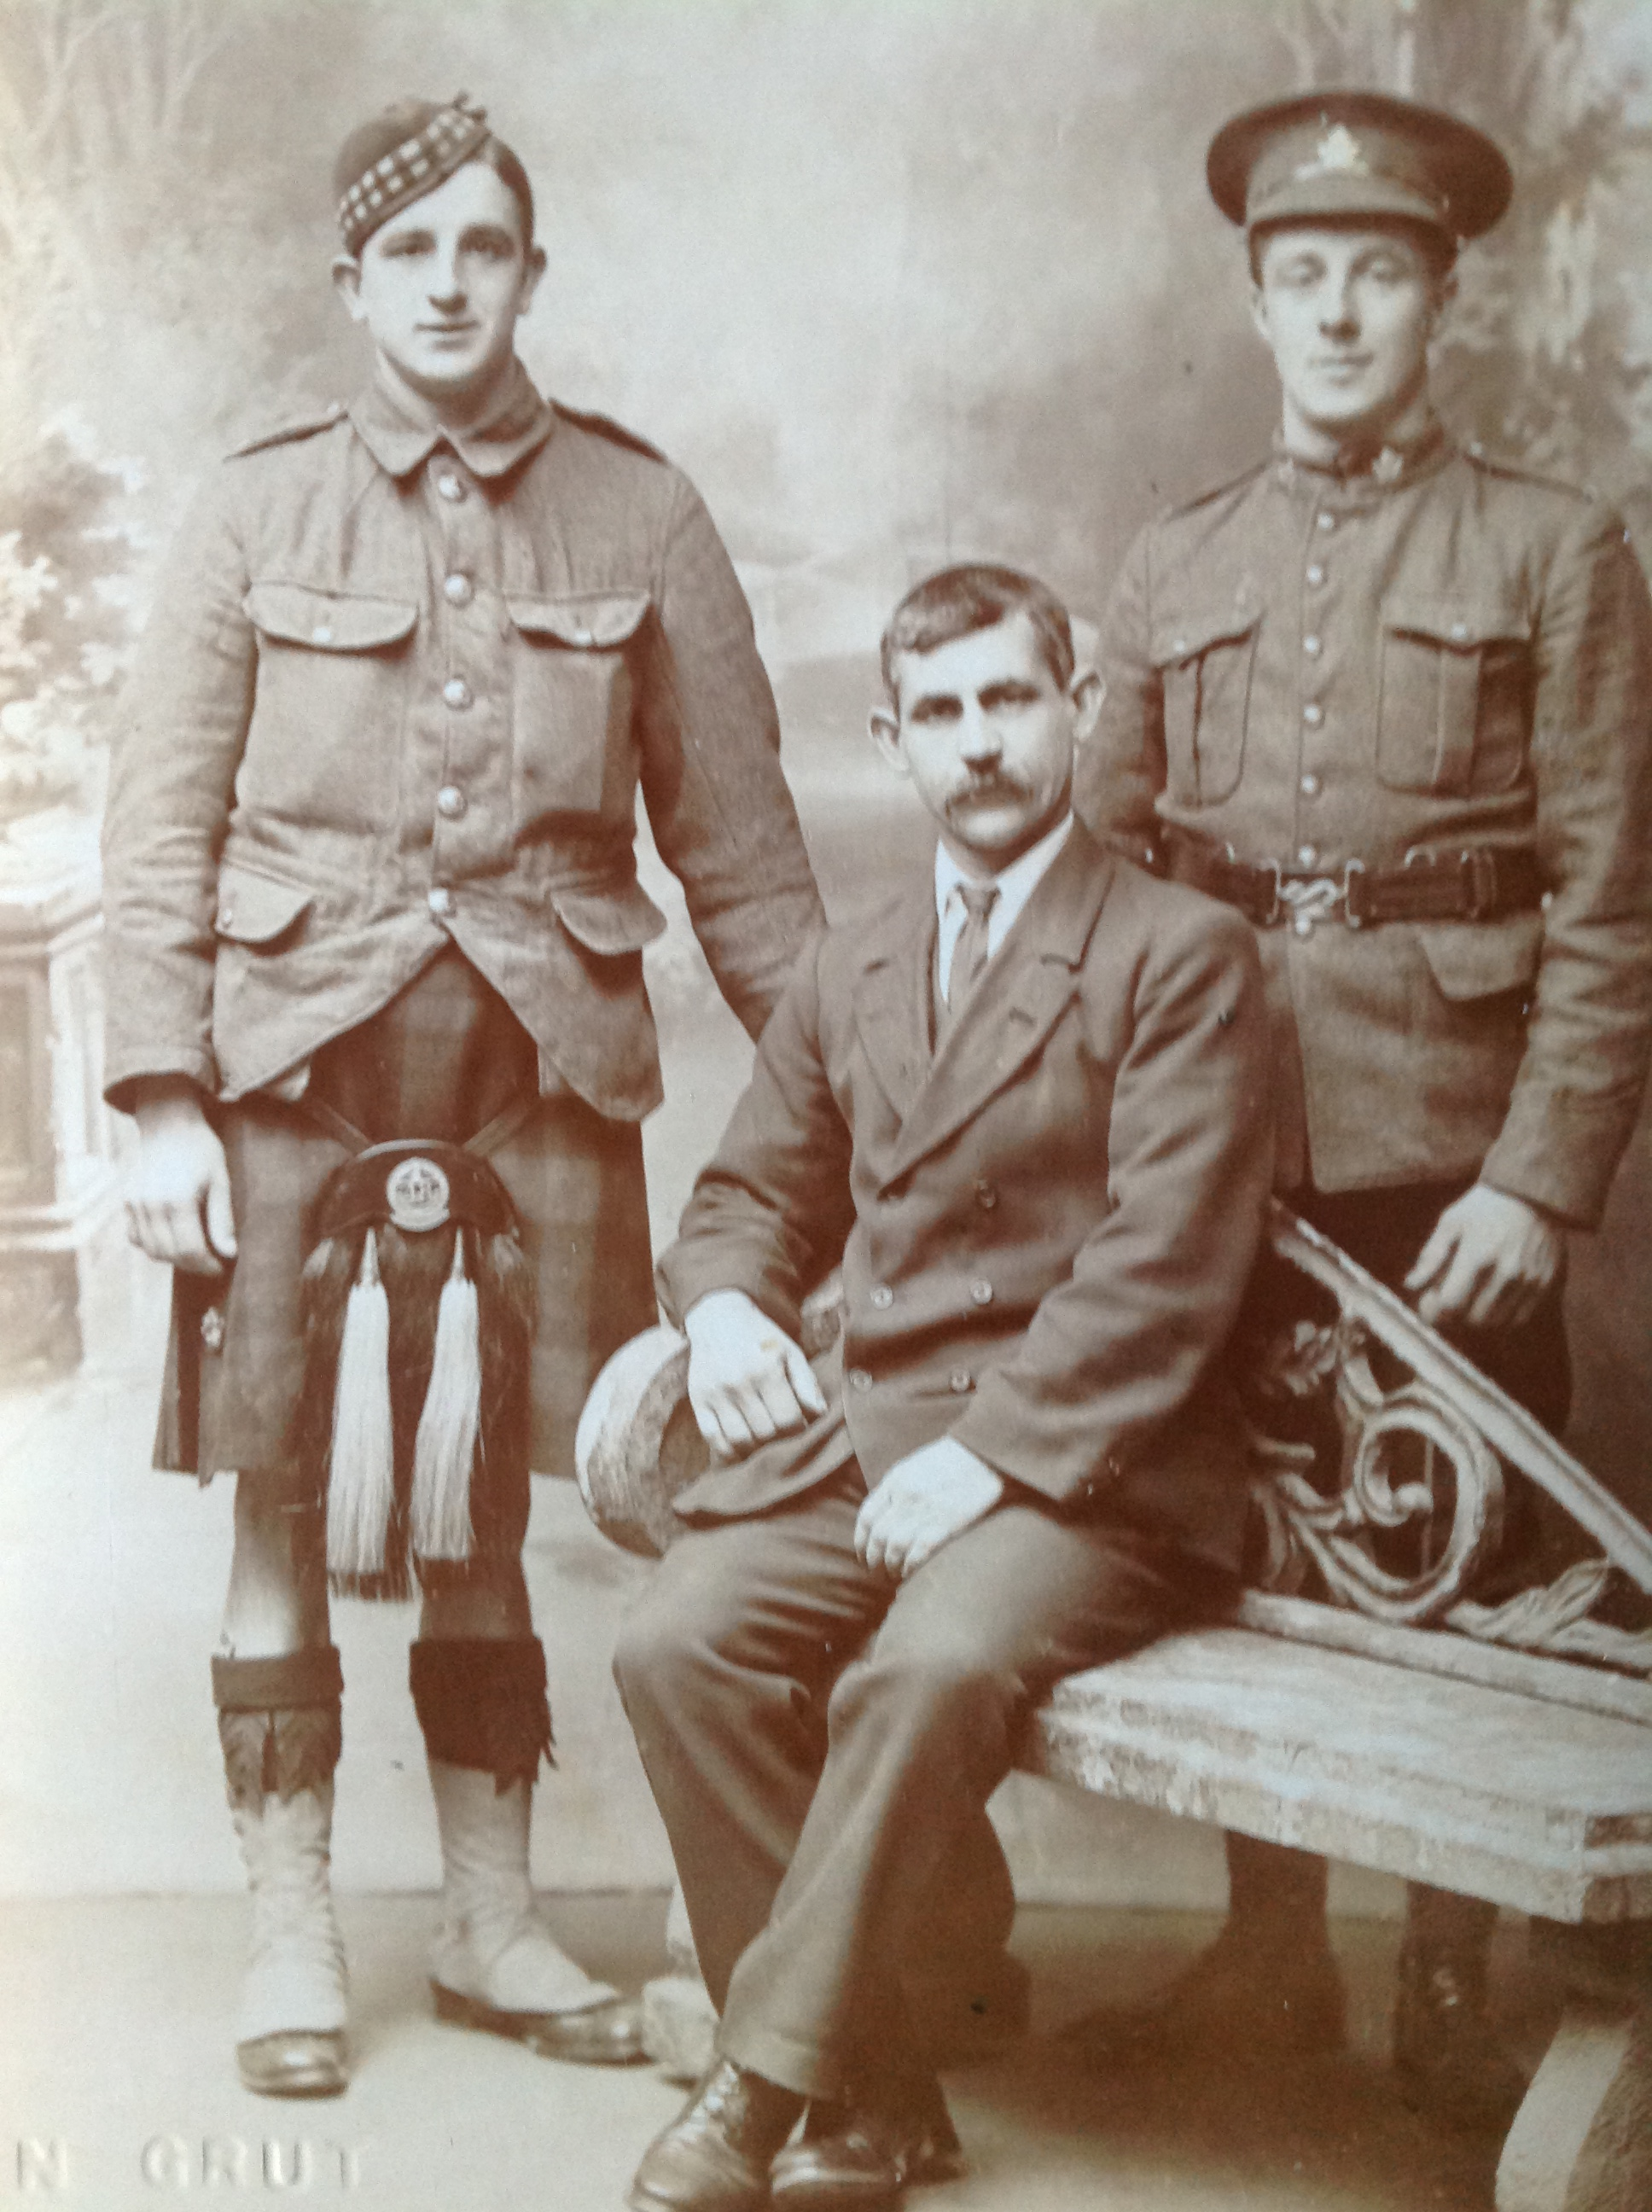 Photo of JEFFERY HIBBS– Jeffrey Hibbs is on the right. This was taken in Guernsey in 1915.